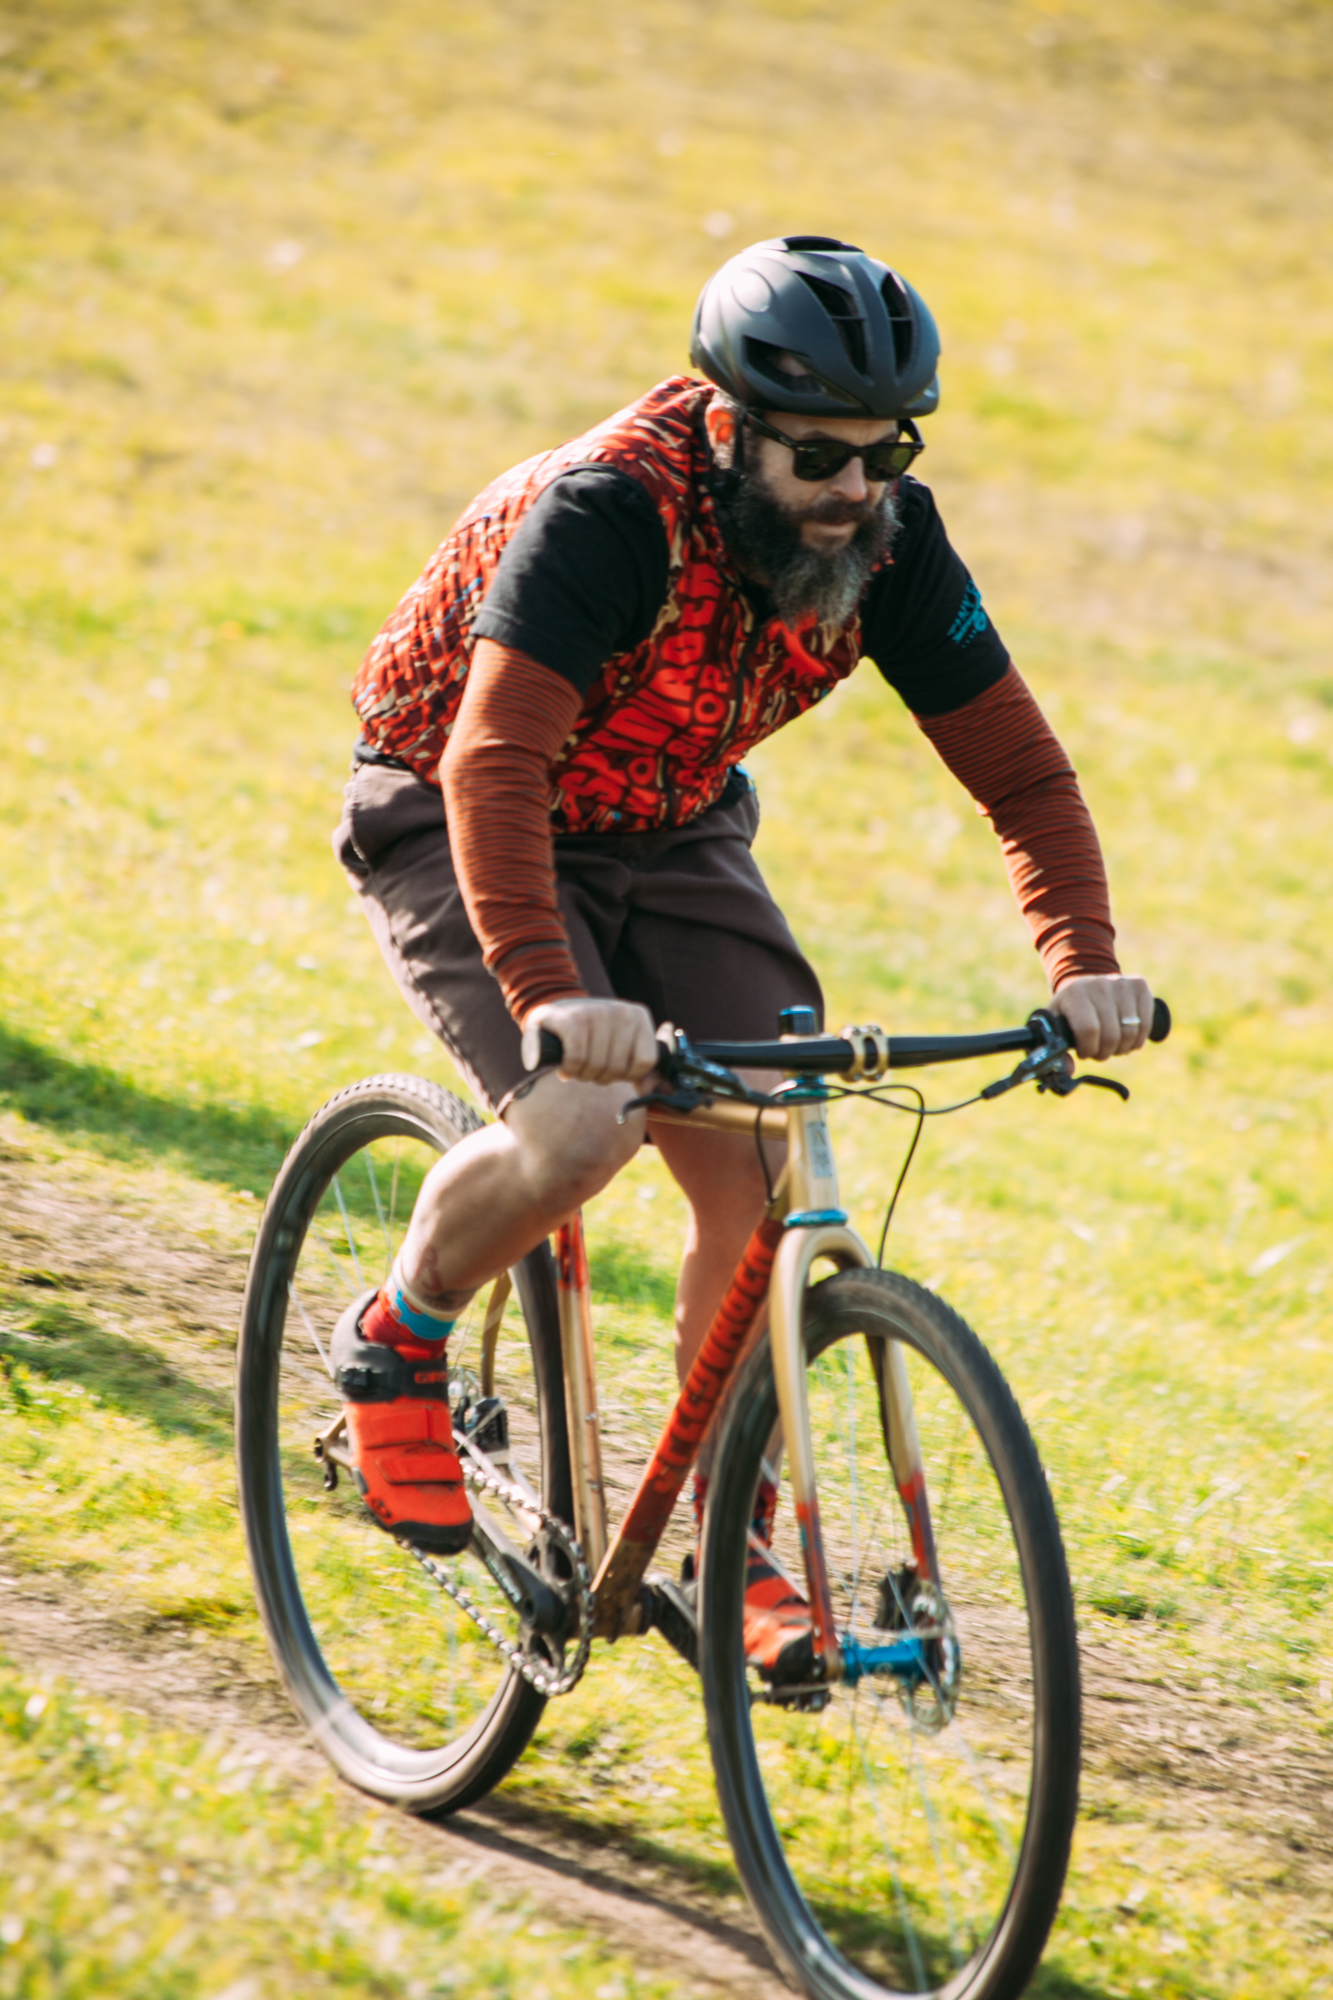 Cyclocross18_CCCX_RainierHS-55-mettlecycling.jpg